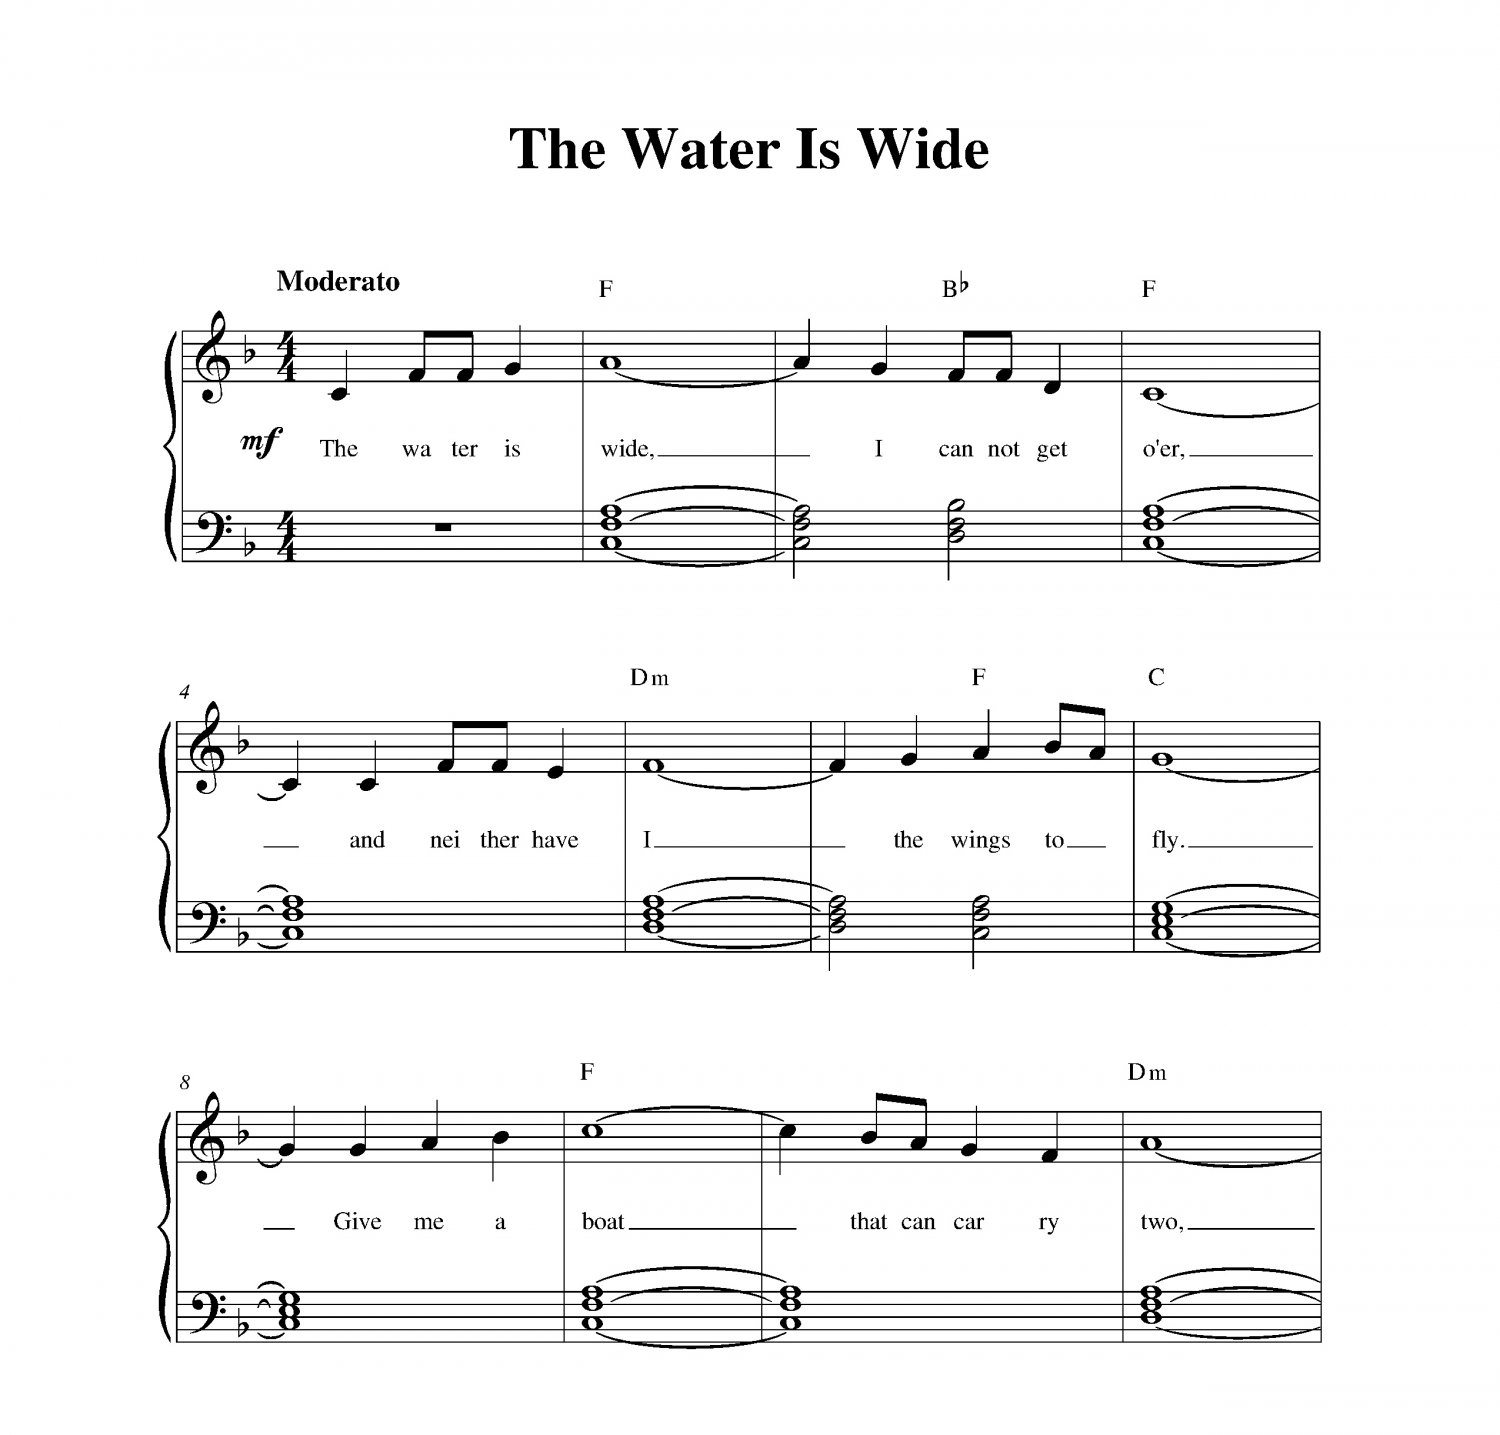 Piano Sheet Music For Shenandoah: Water Is Wide, The